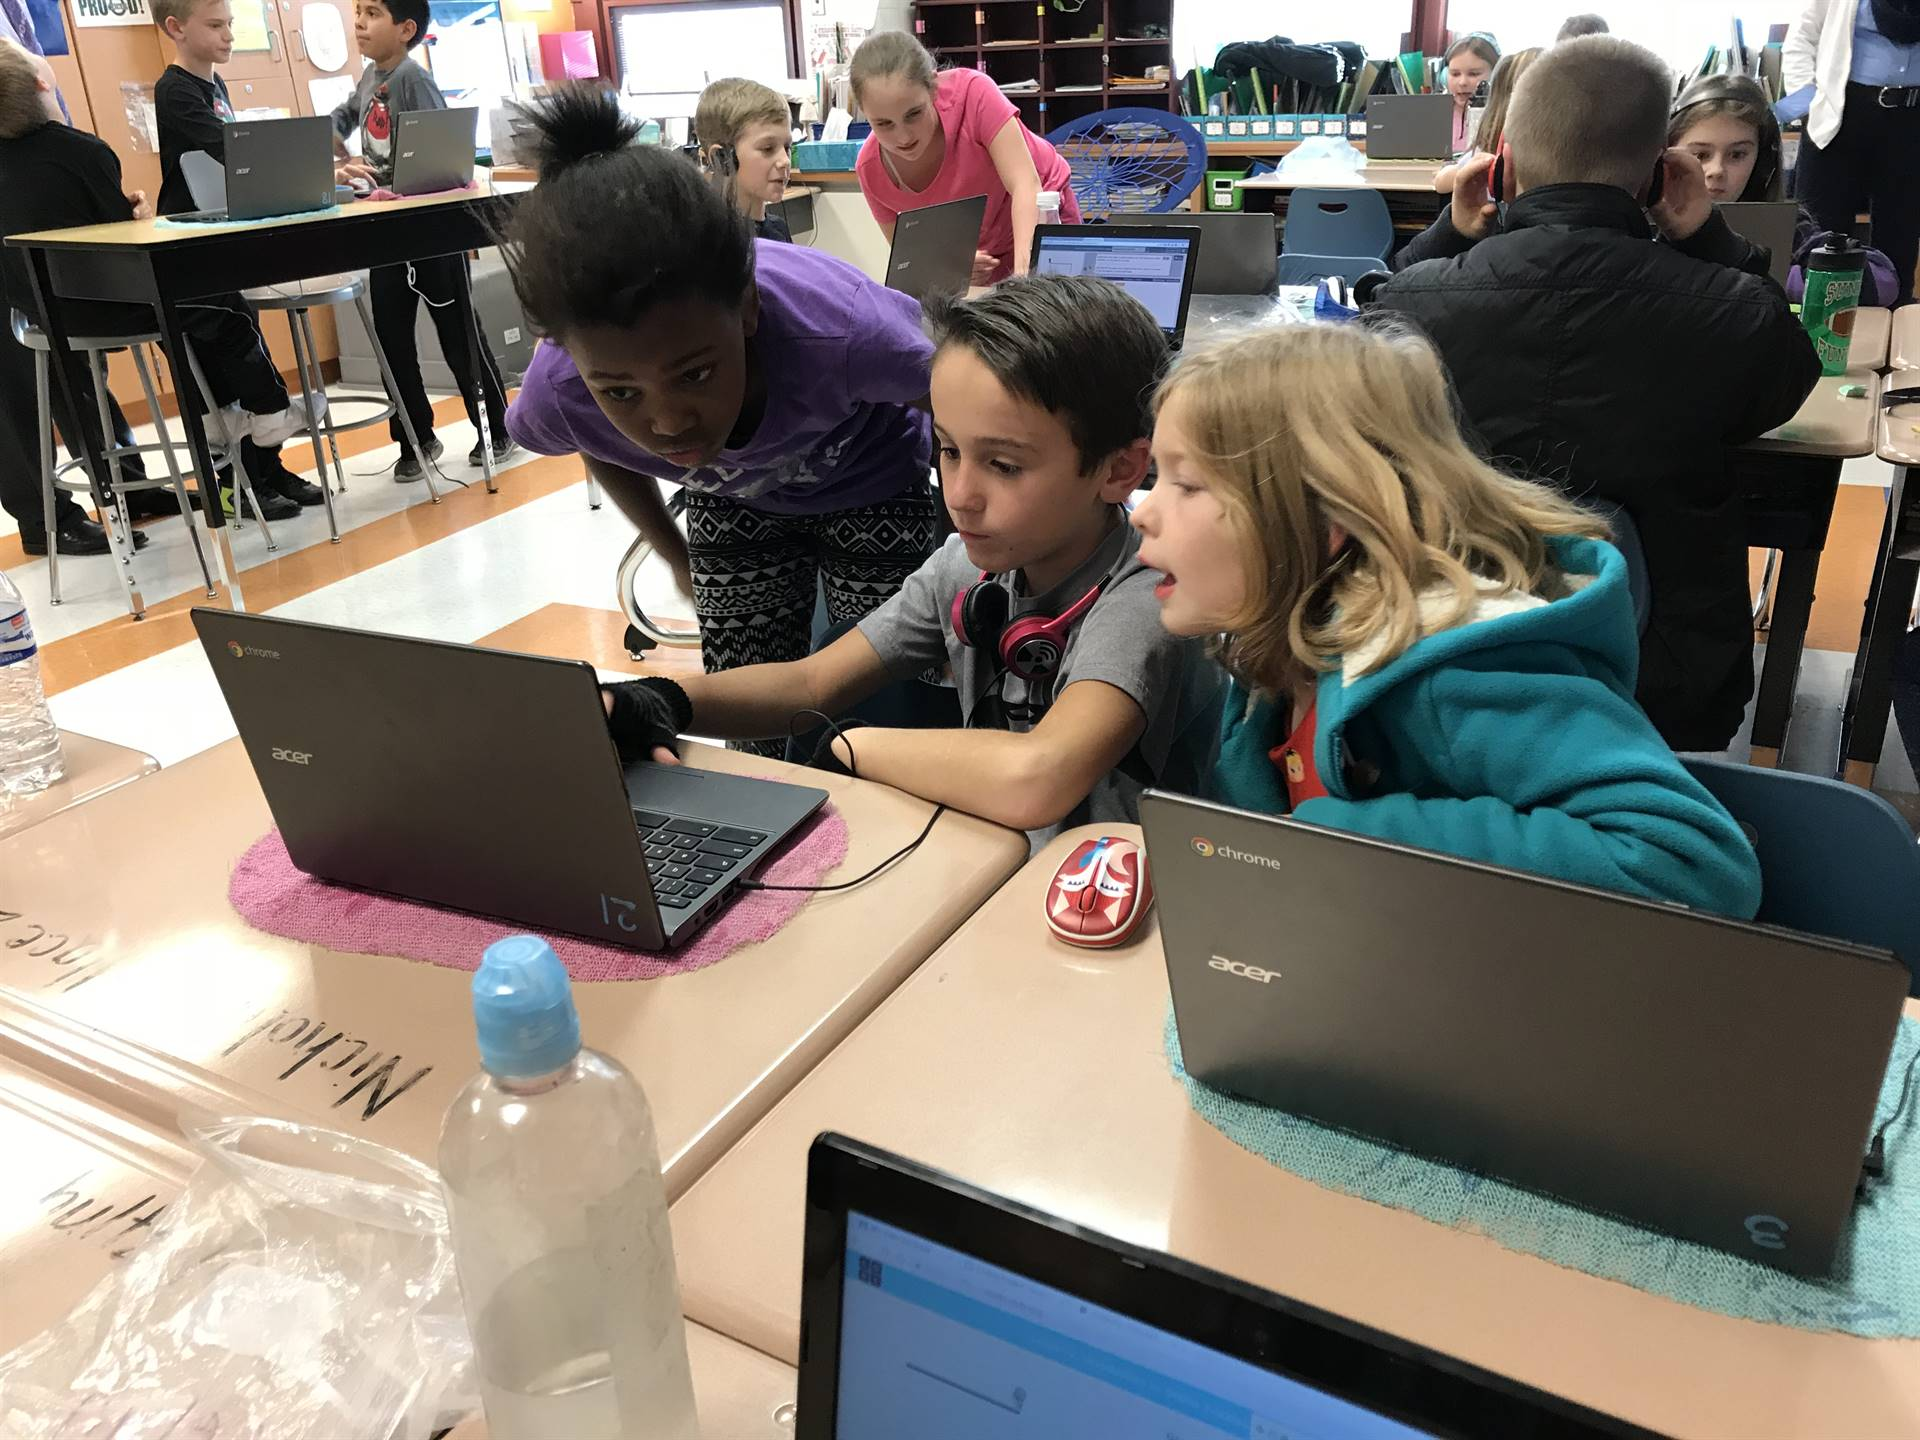 Senior Franklin Vallant assists a student with a coding activity.